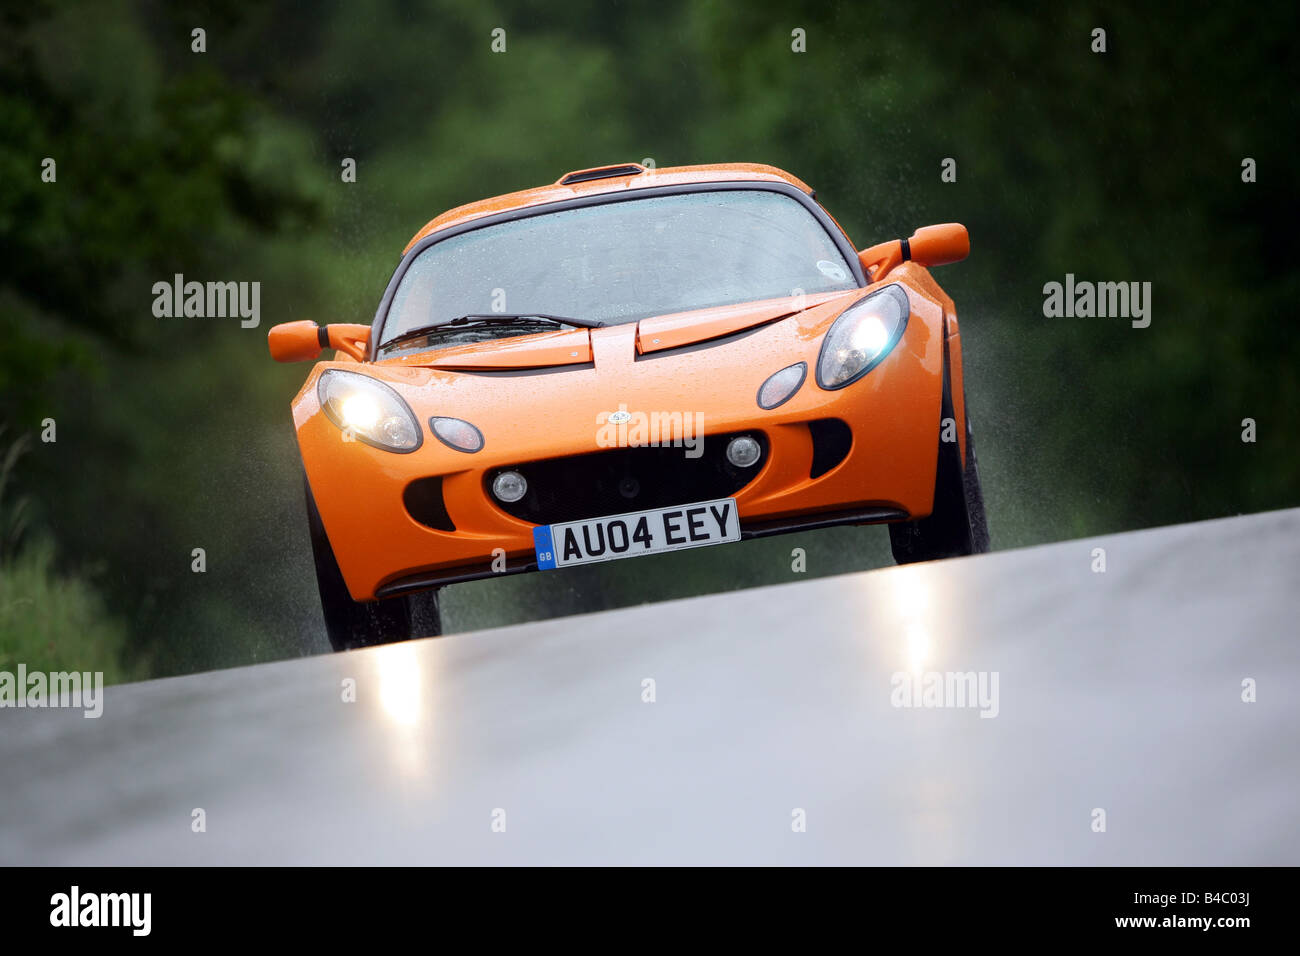 Car lotus exige model year 2004 roadster orange coupecoupe car lotus exige model year 2004 roadster orange coupecoupe driving diagonal from the front frontal view country road vanachro Images